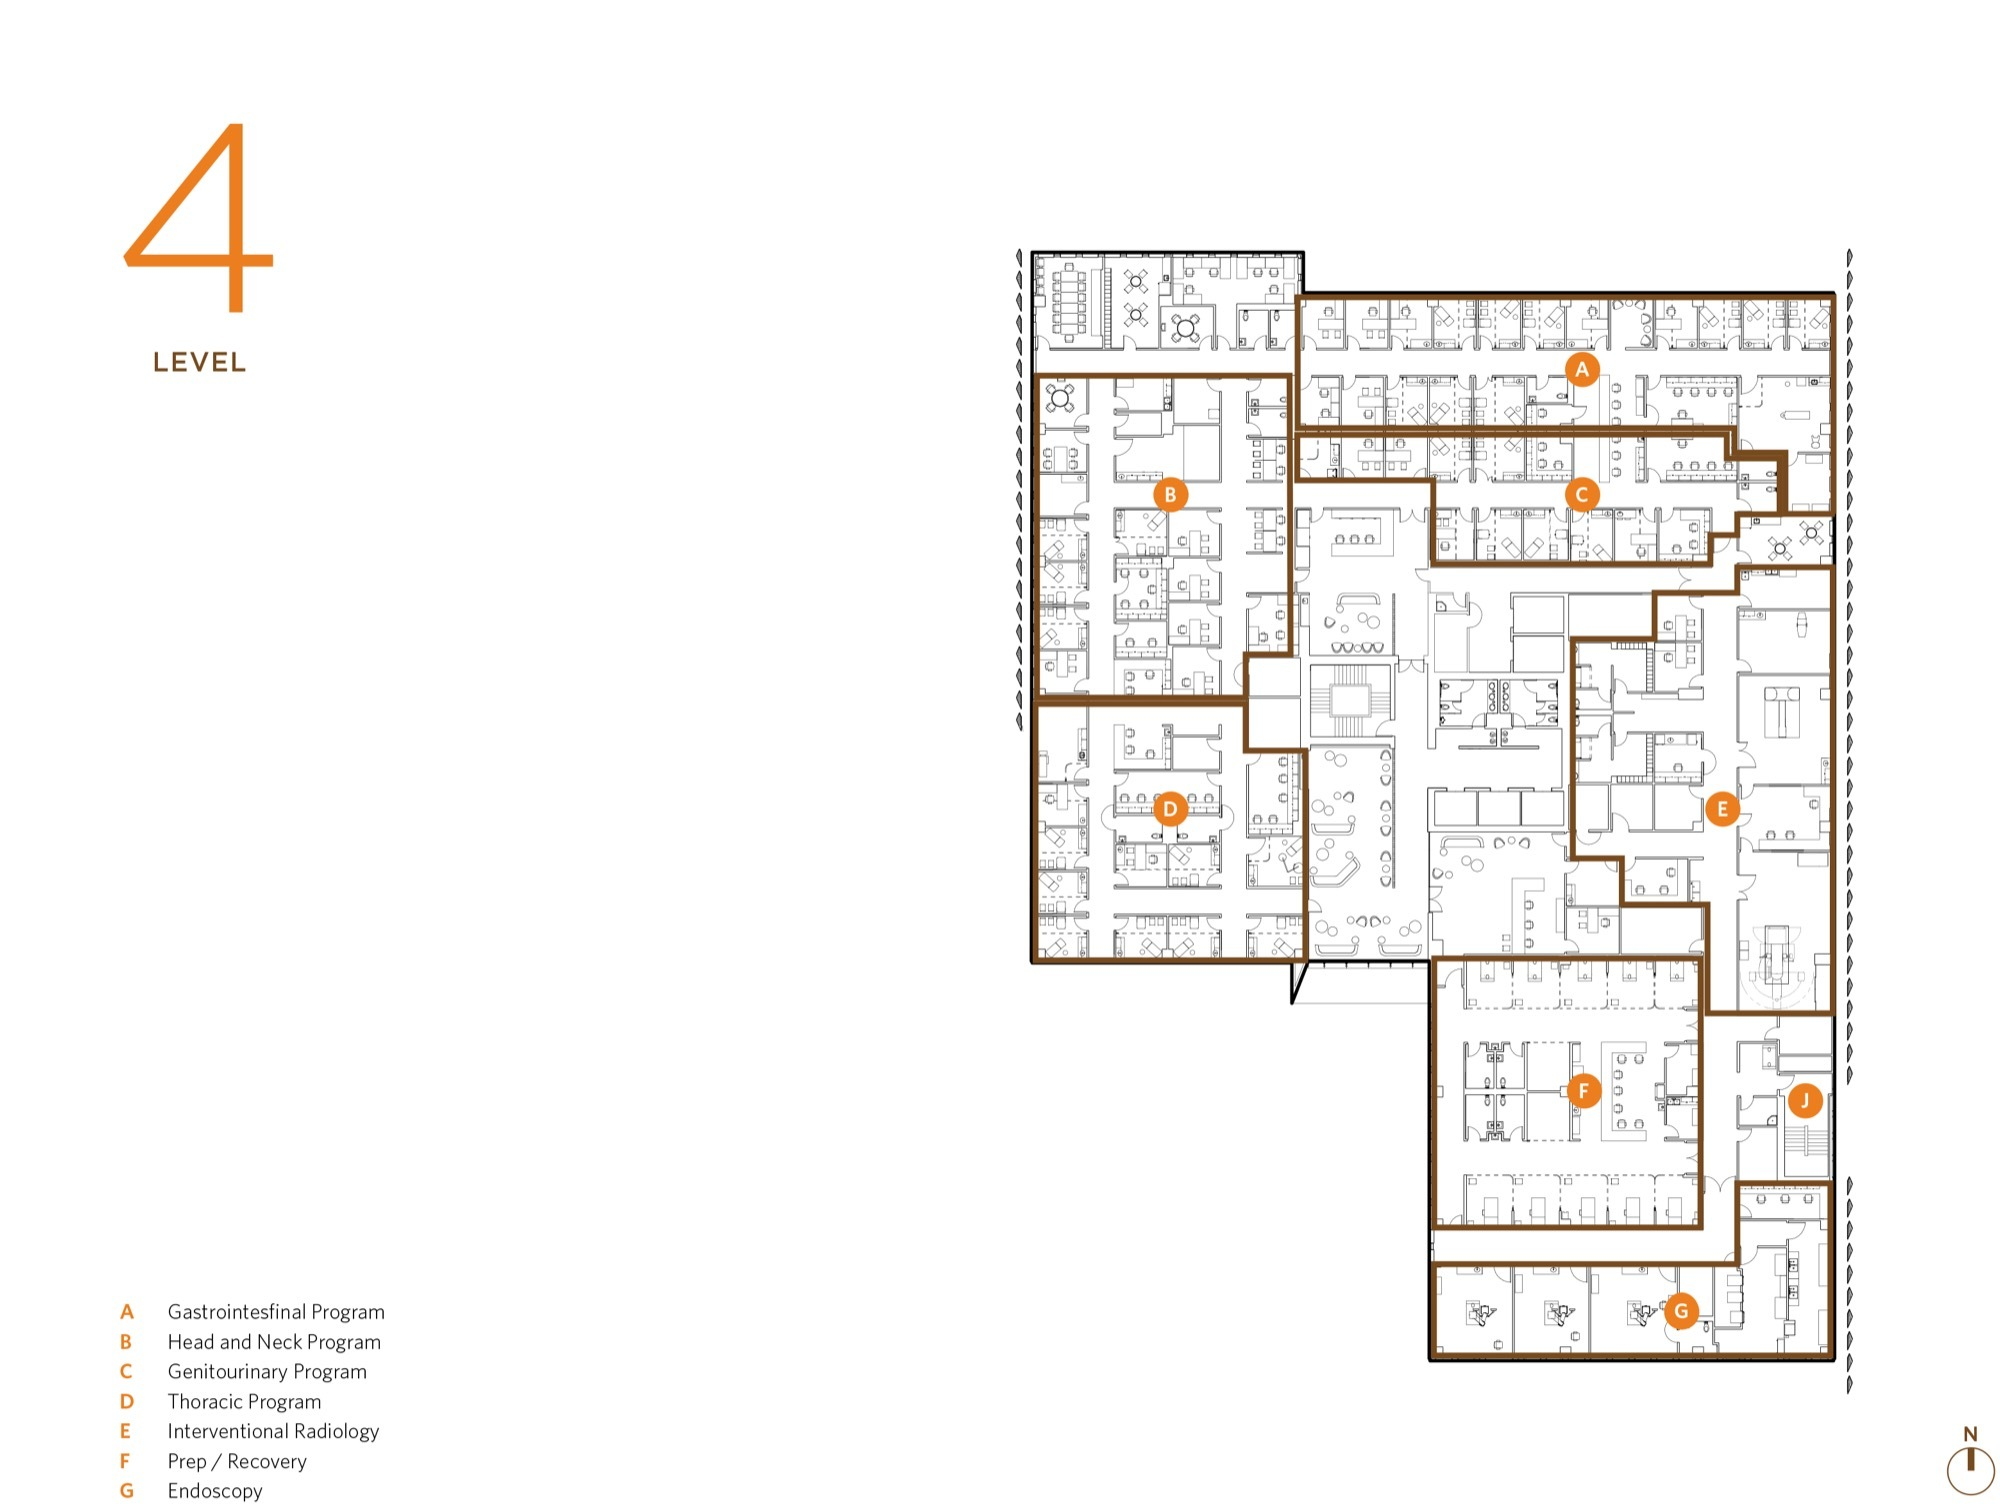 Cancer Center Floor Plan Gallery Of University Of Arizona Cancer Center Zgf